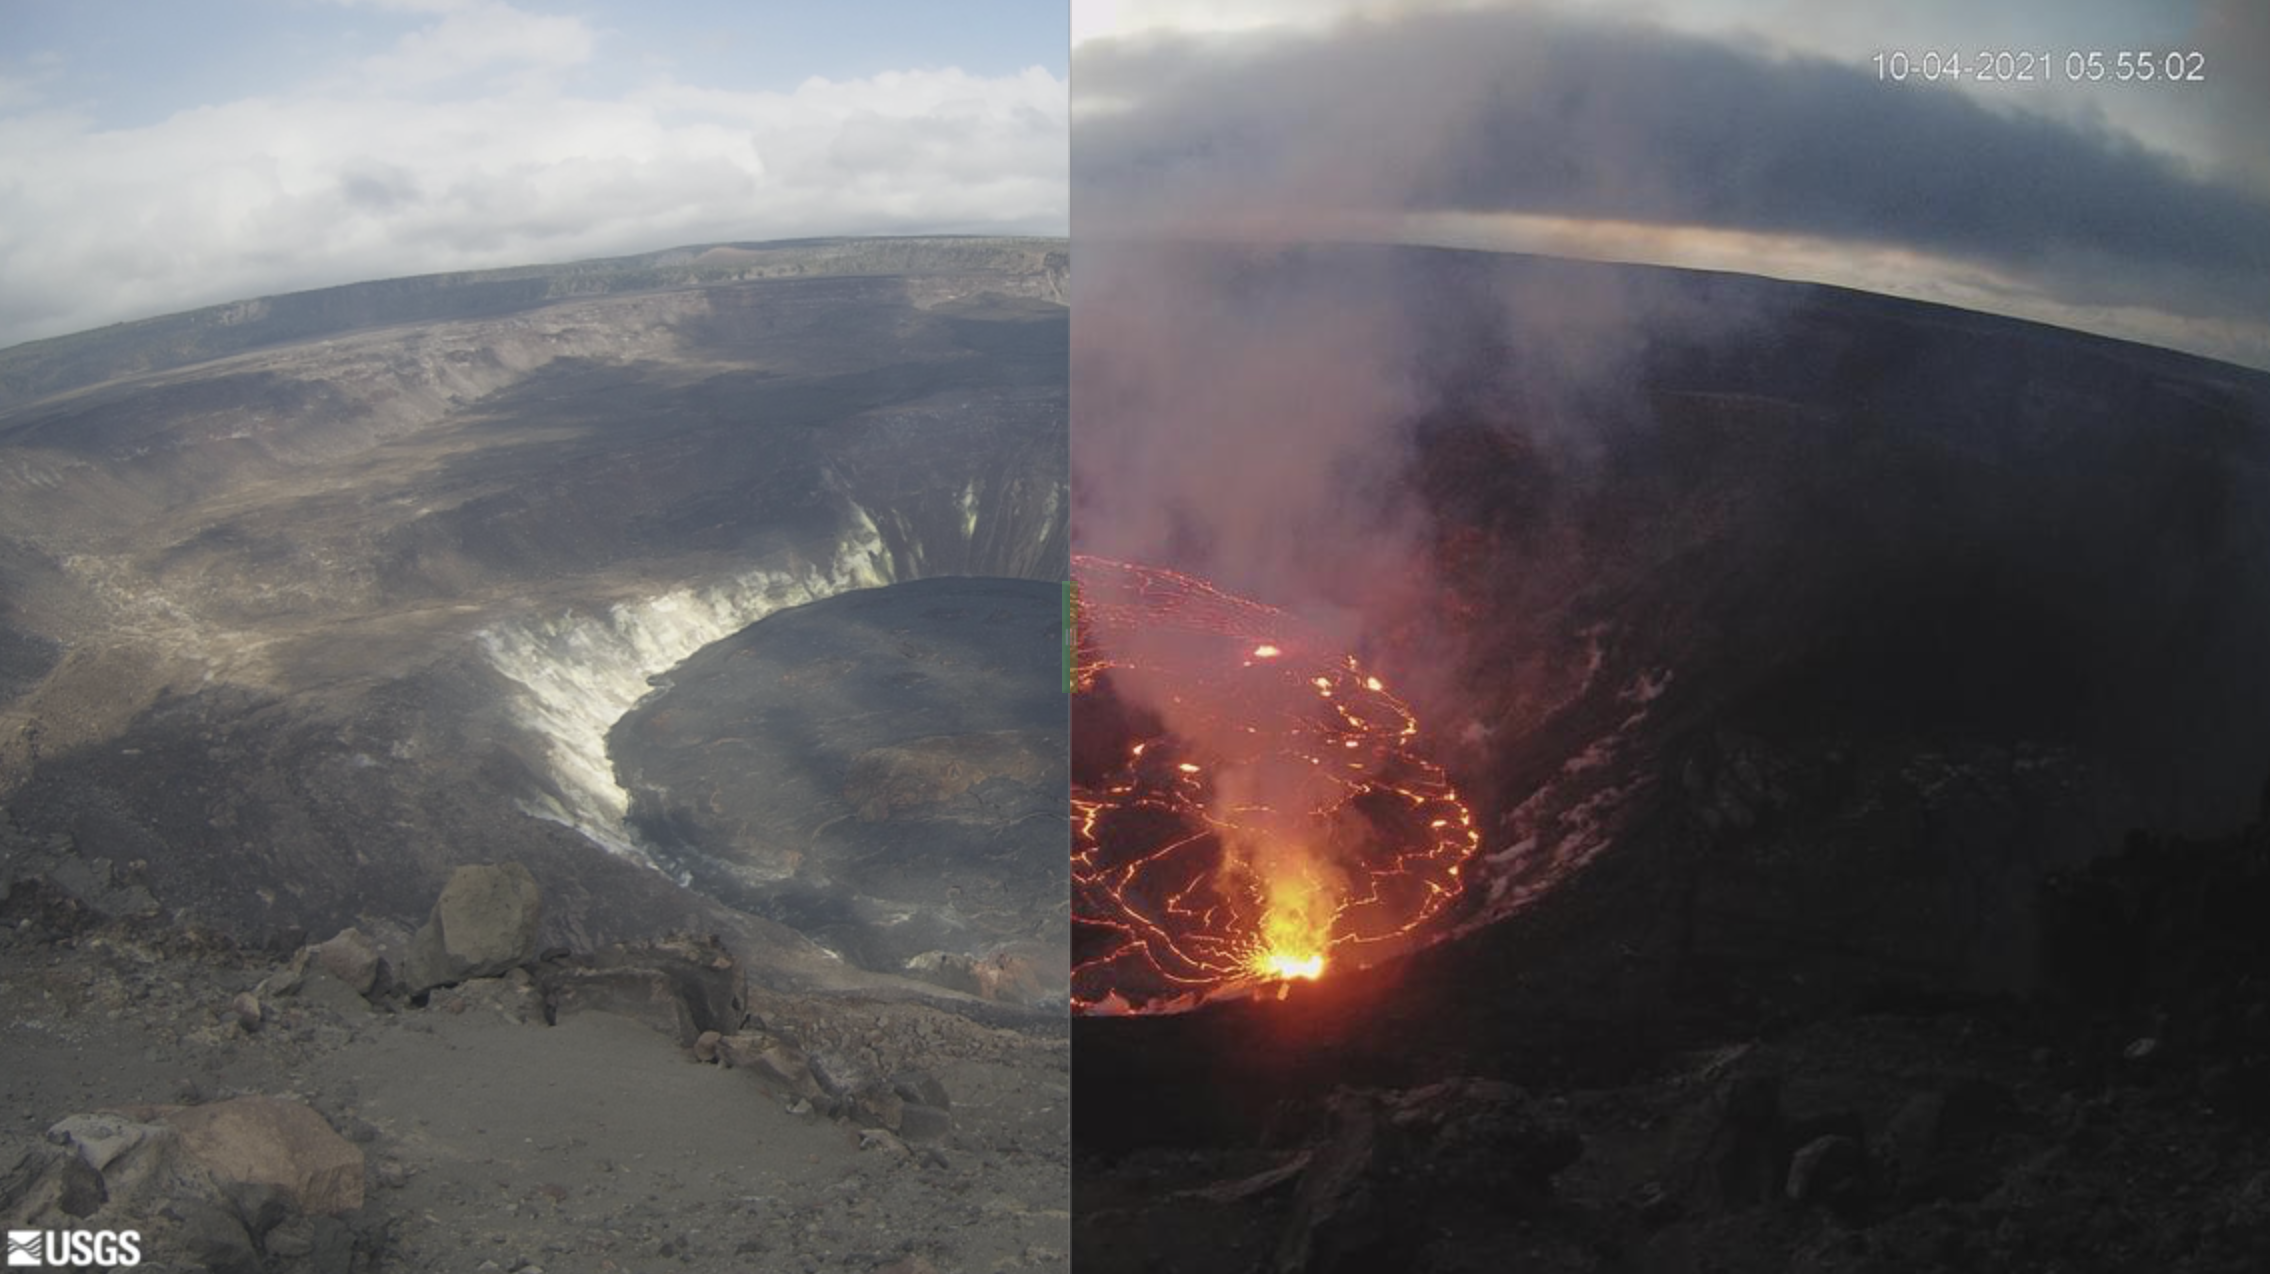 Scientists Say it is Unclear How Long the Current Kīlauea Eruption Will Last